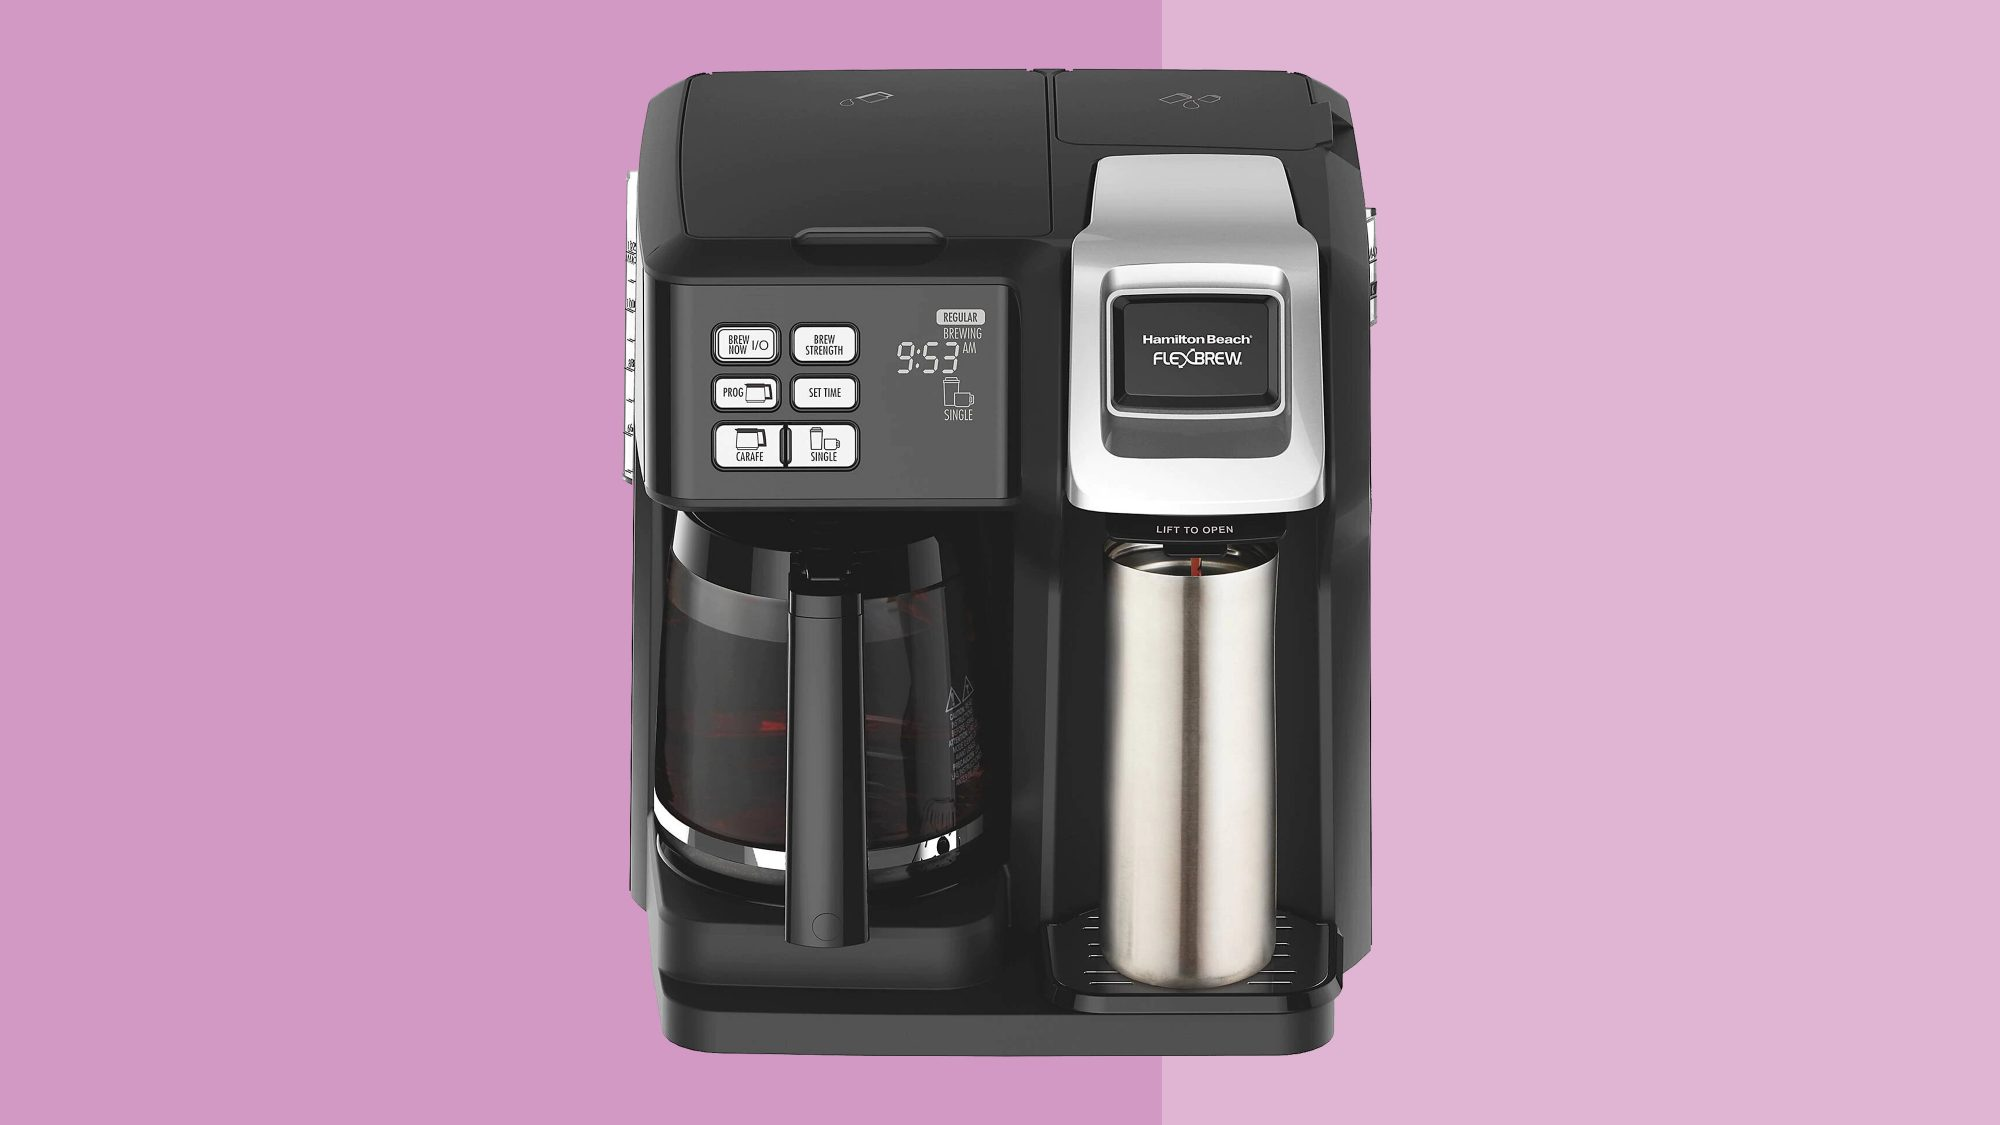 Hamilton Beach FlexBrew 2-Way Coffee maker Tout